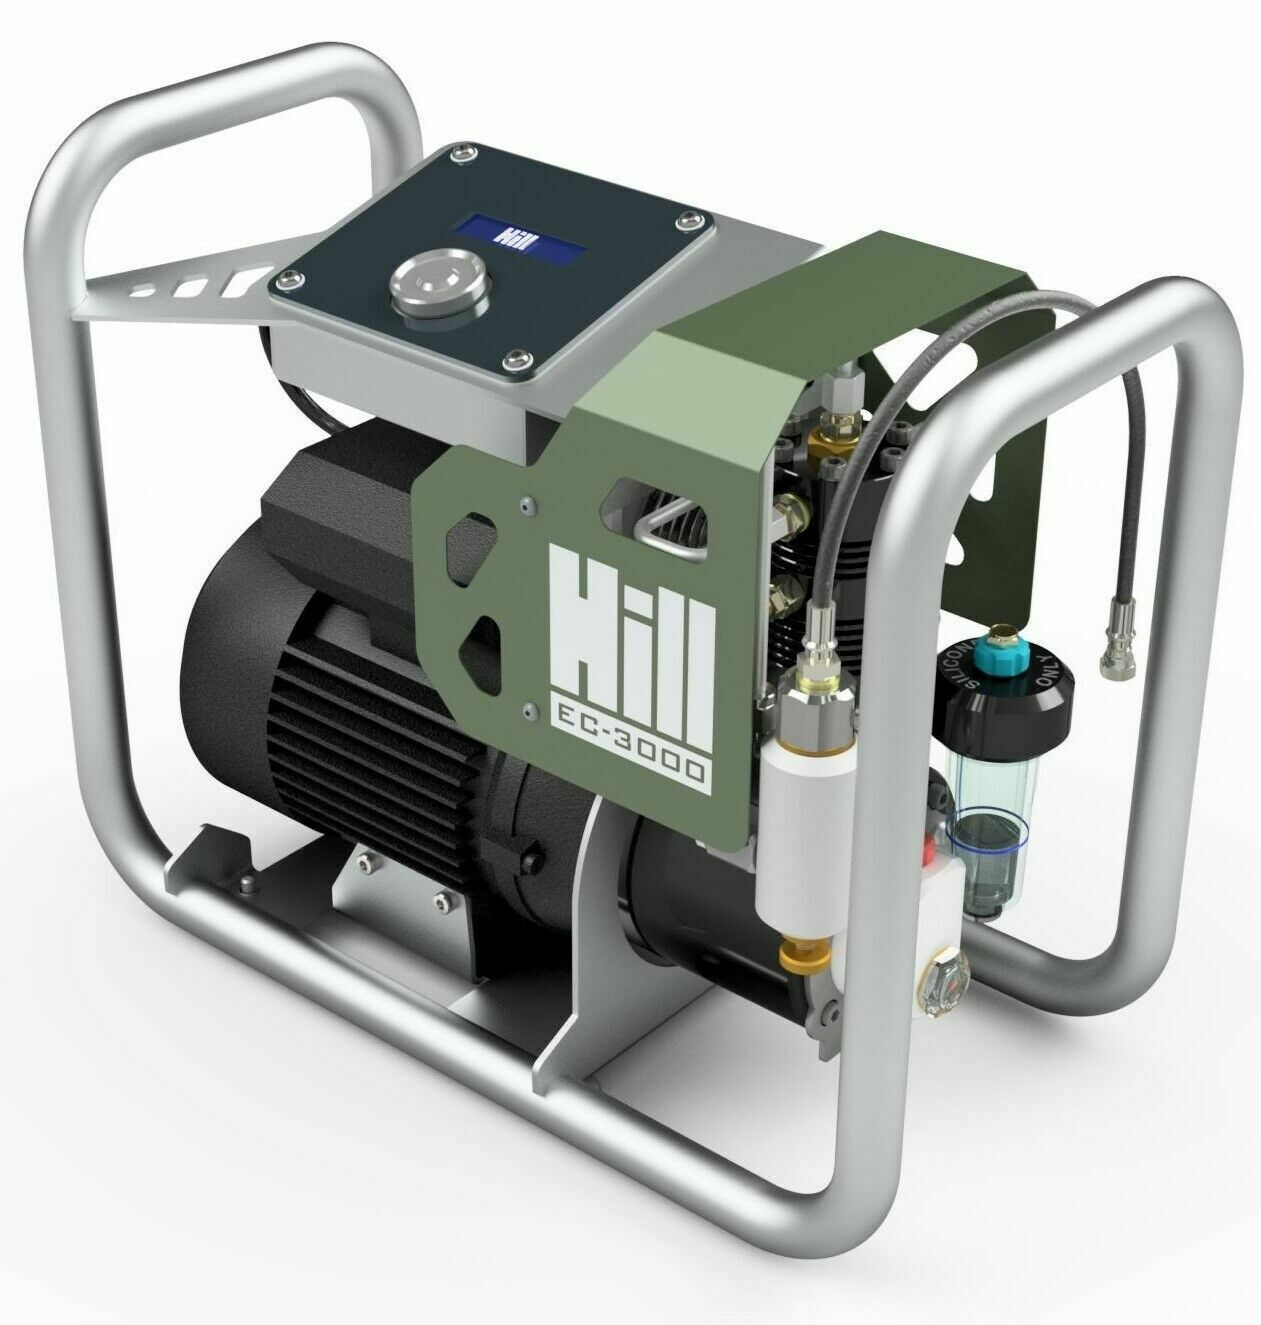 Hill Pump EC -3000 Compressor 230v